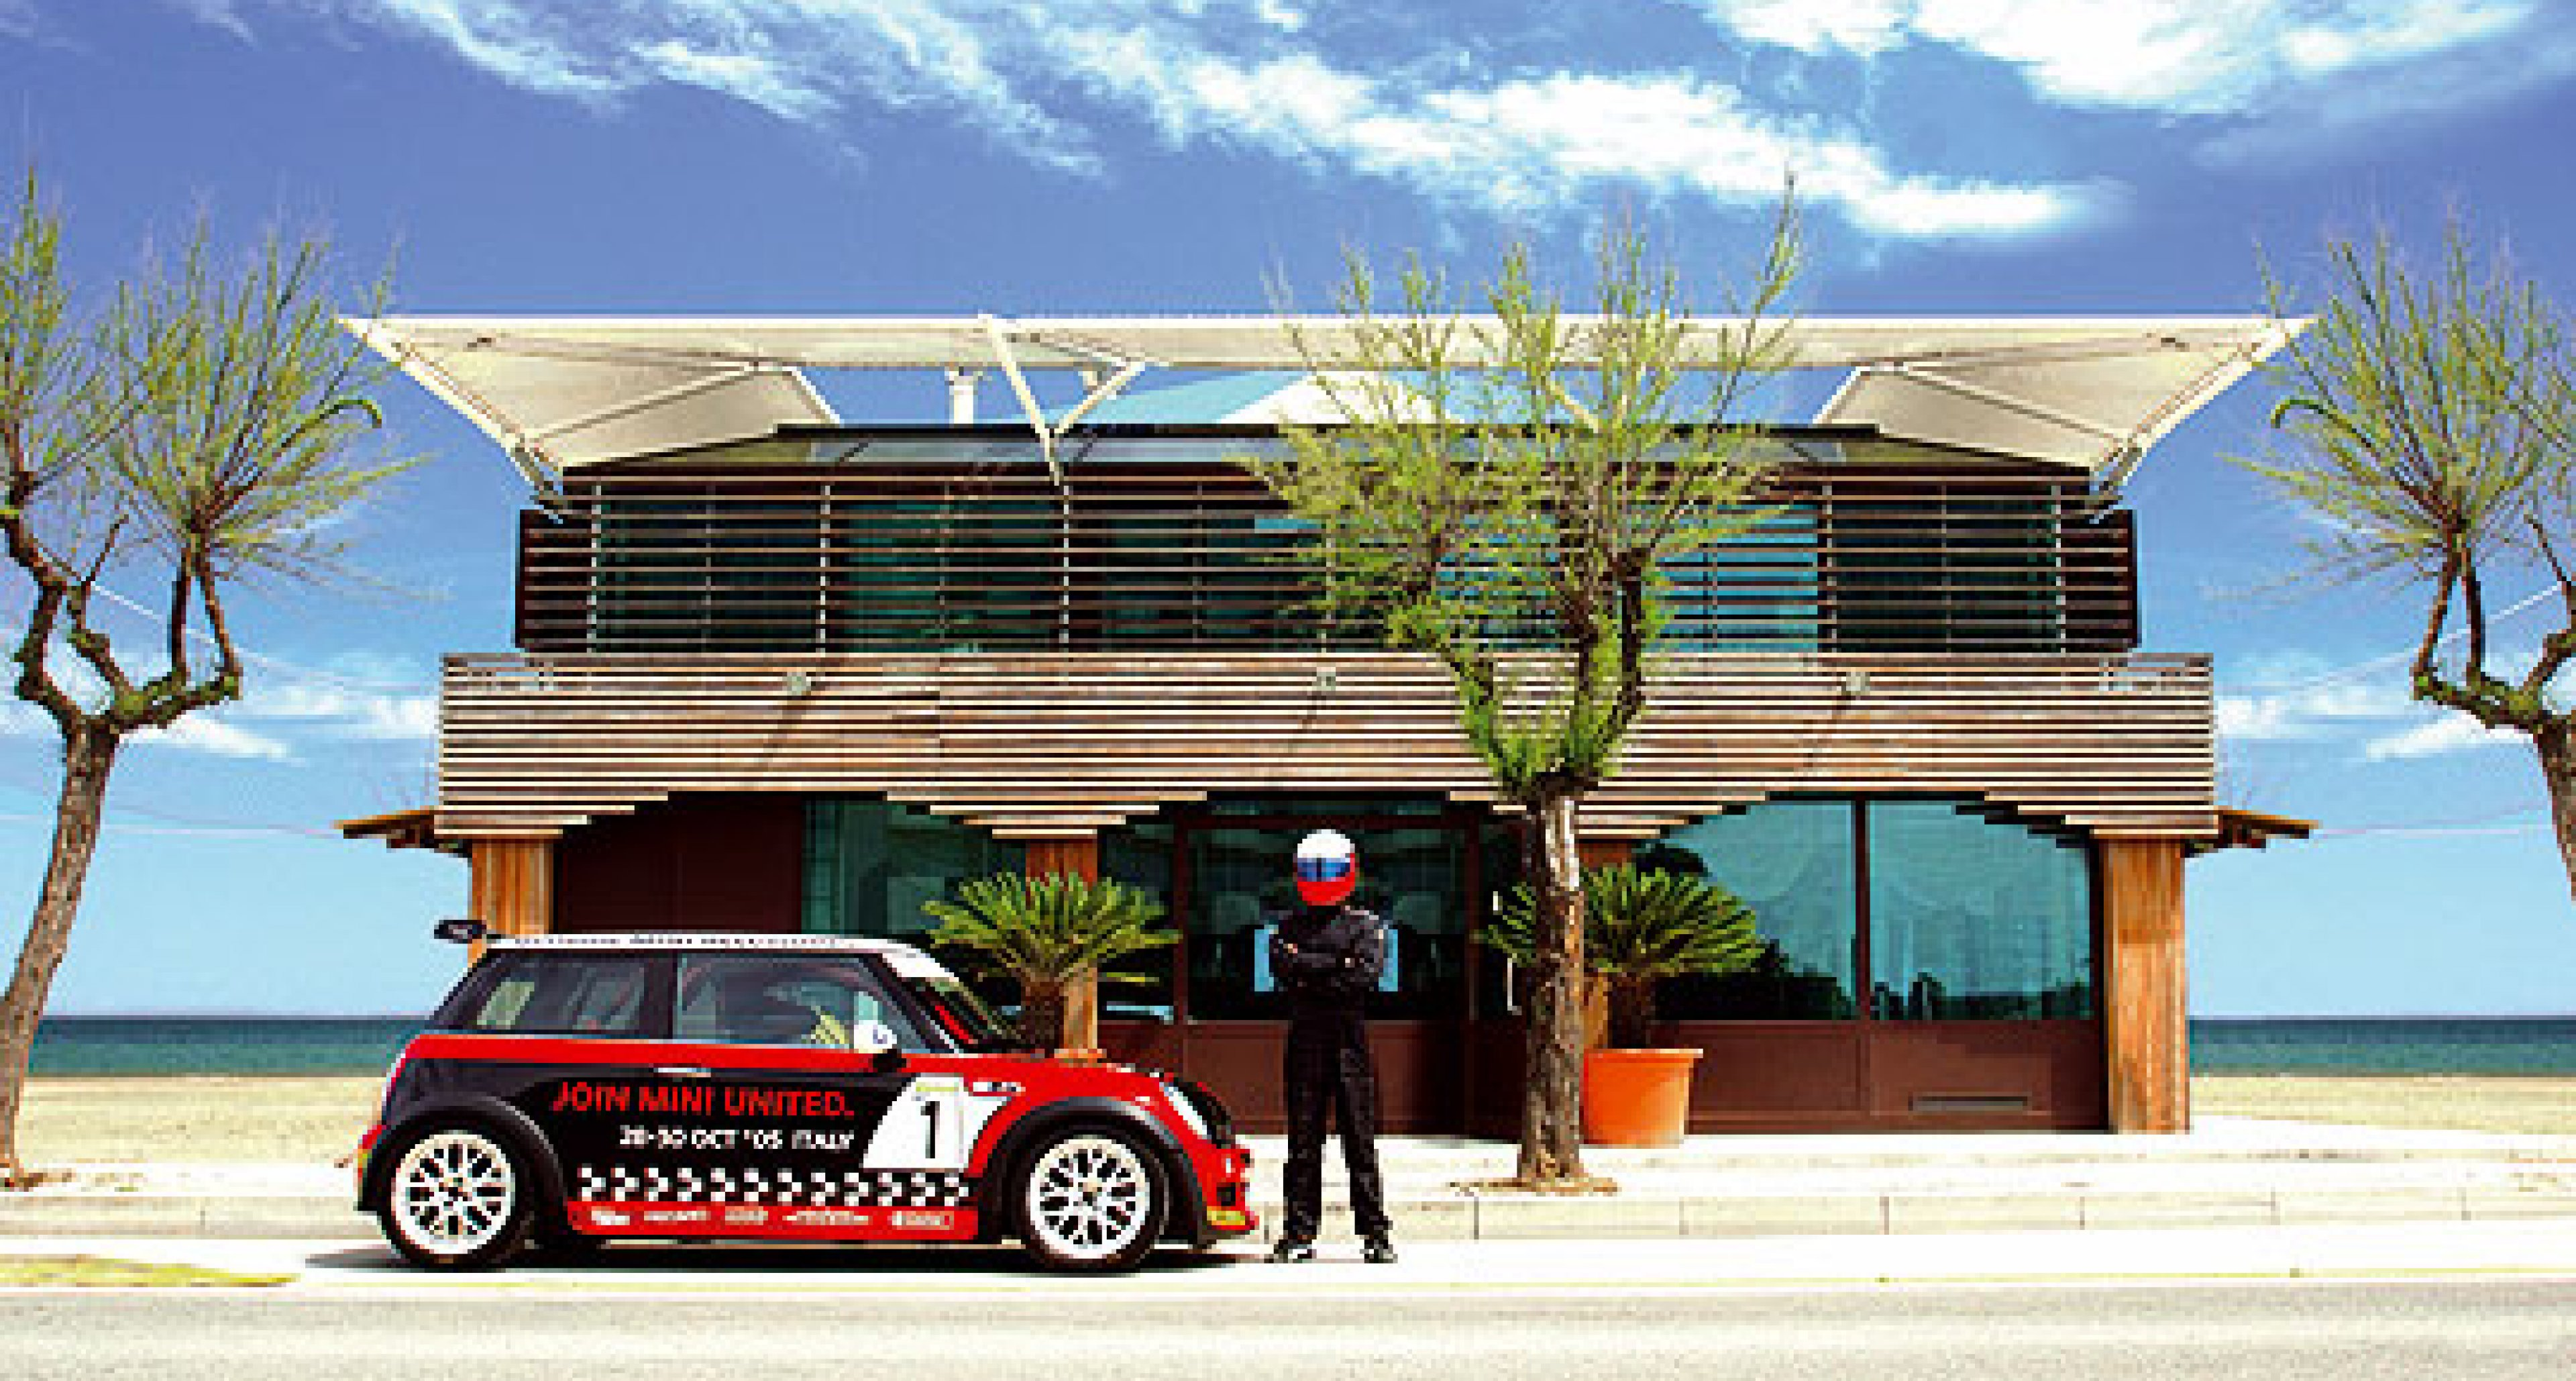 MINI Unites the world...and crowns its first world champion